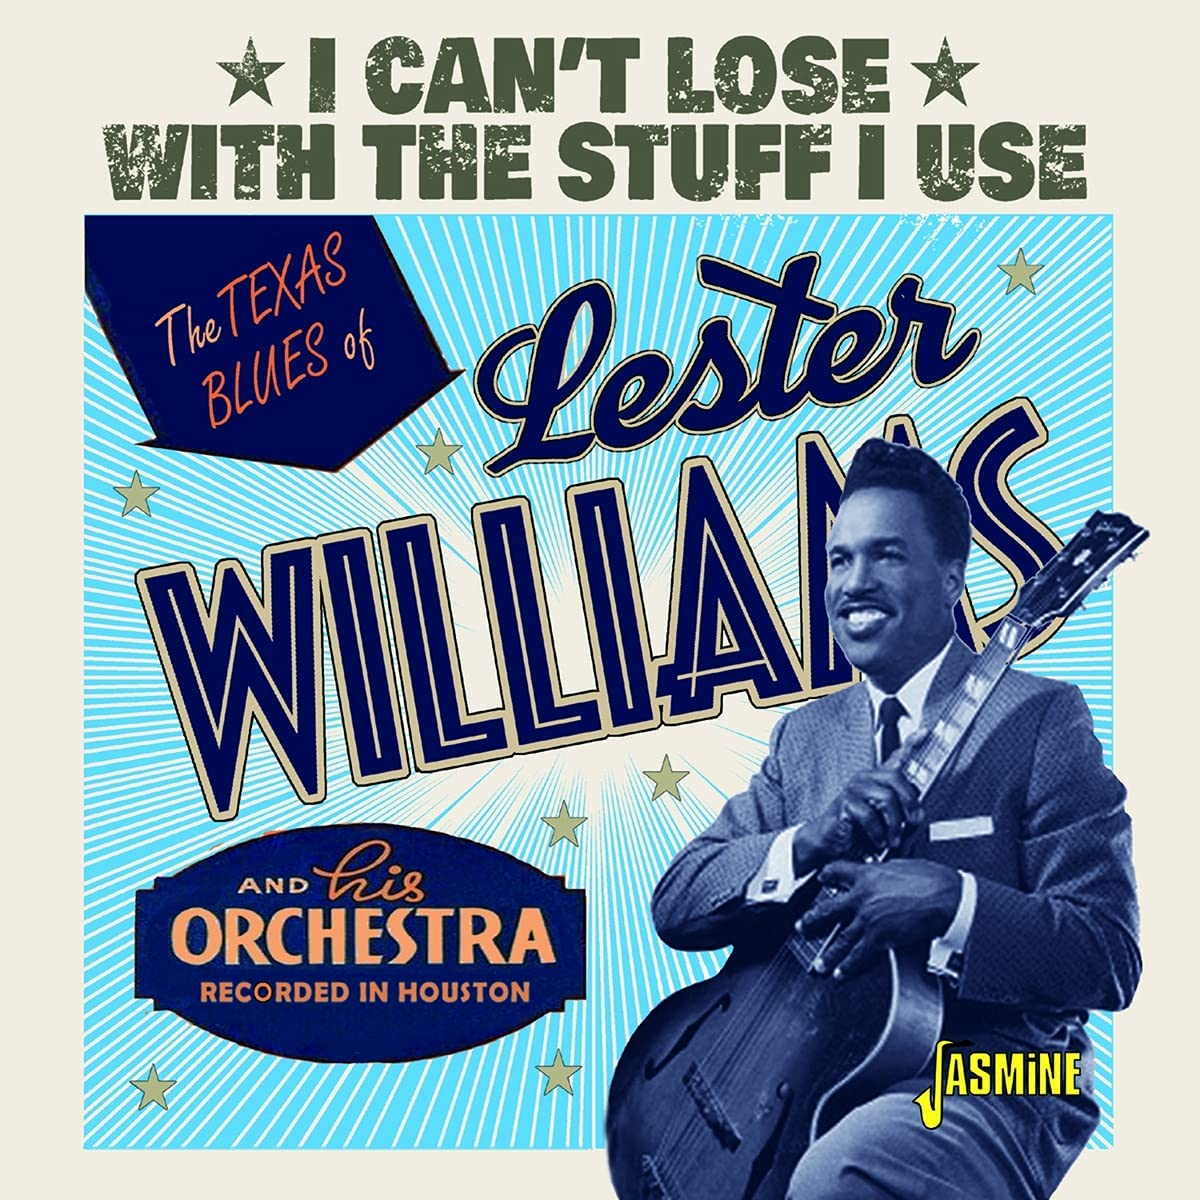 Lester Williams - I Can't Lose With The Stuff I Use – The Texas Blues Of Lester Williams & His Orchestra – Recorded In Houston